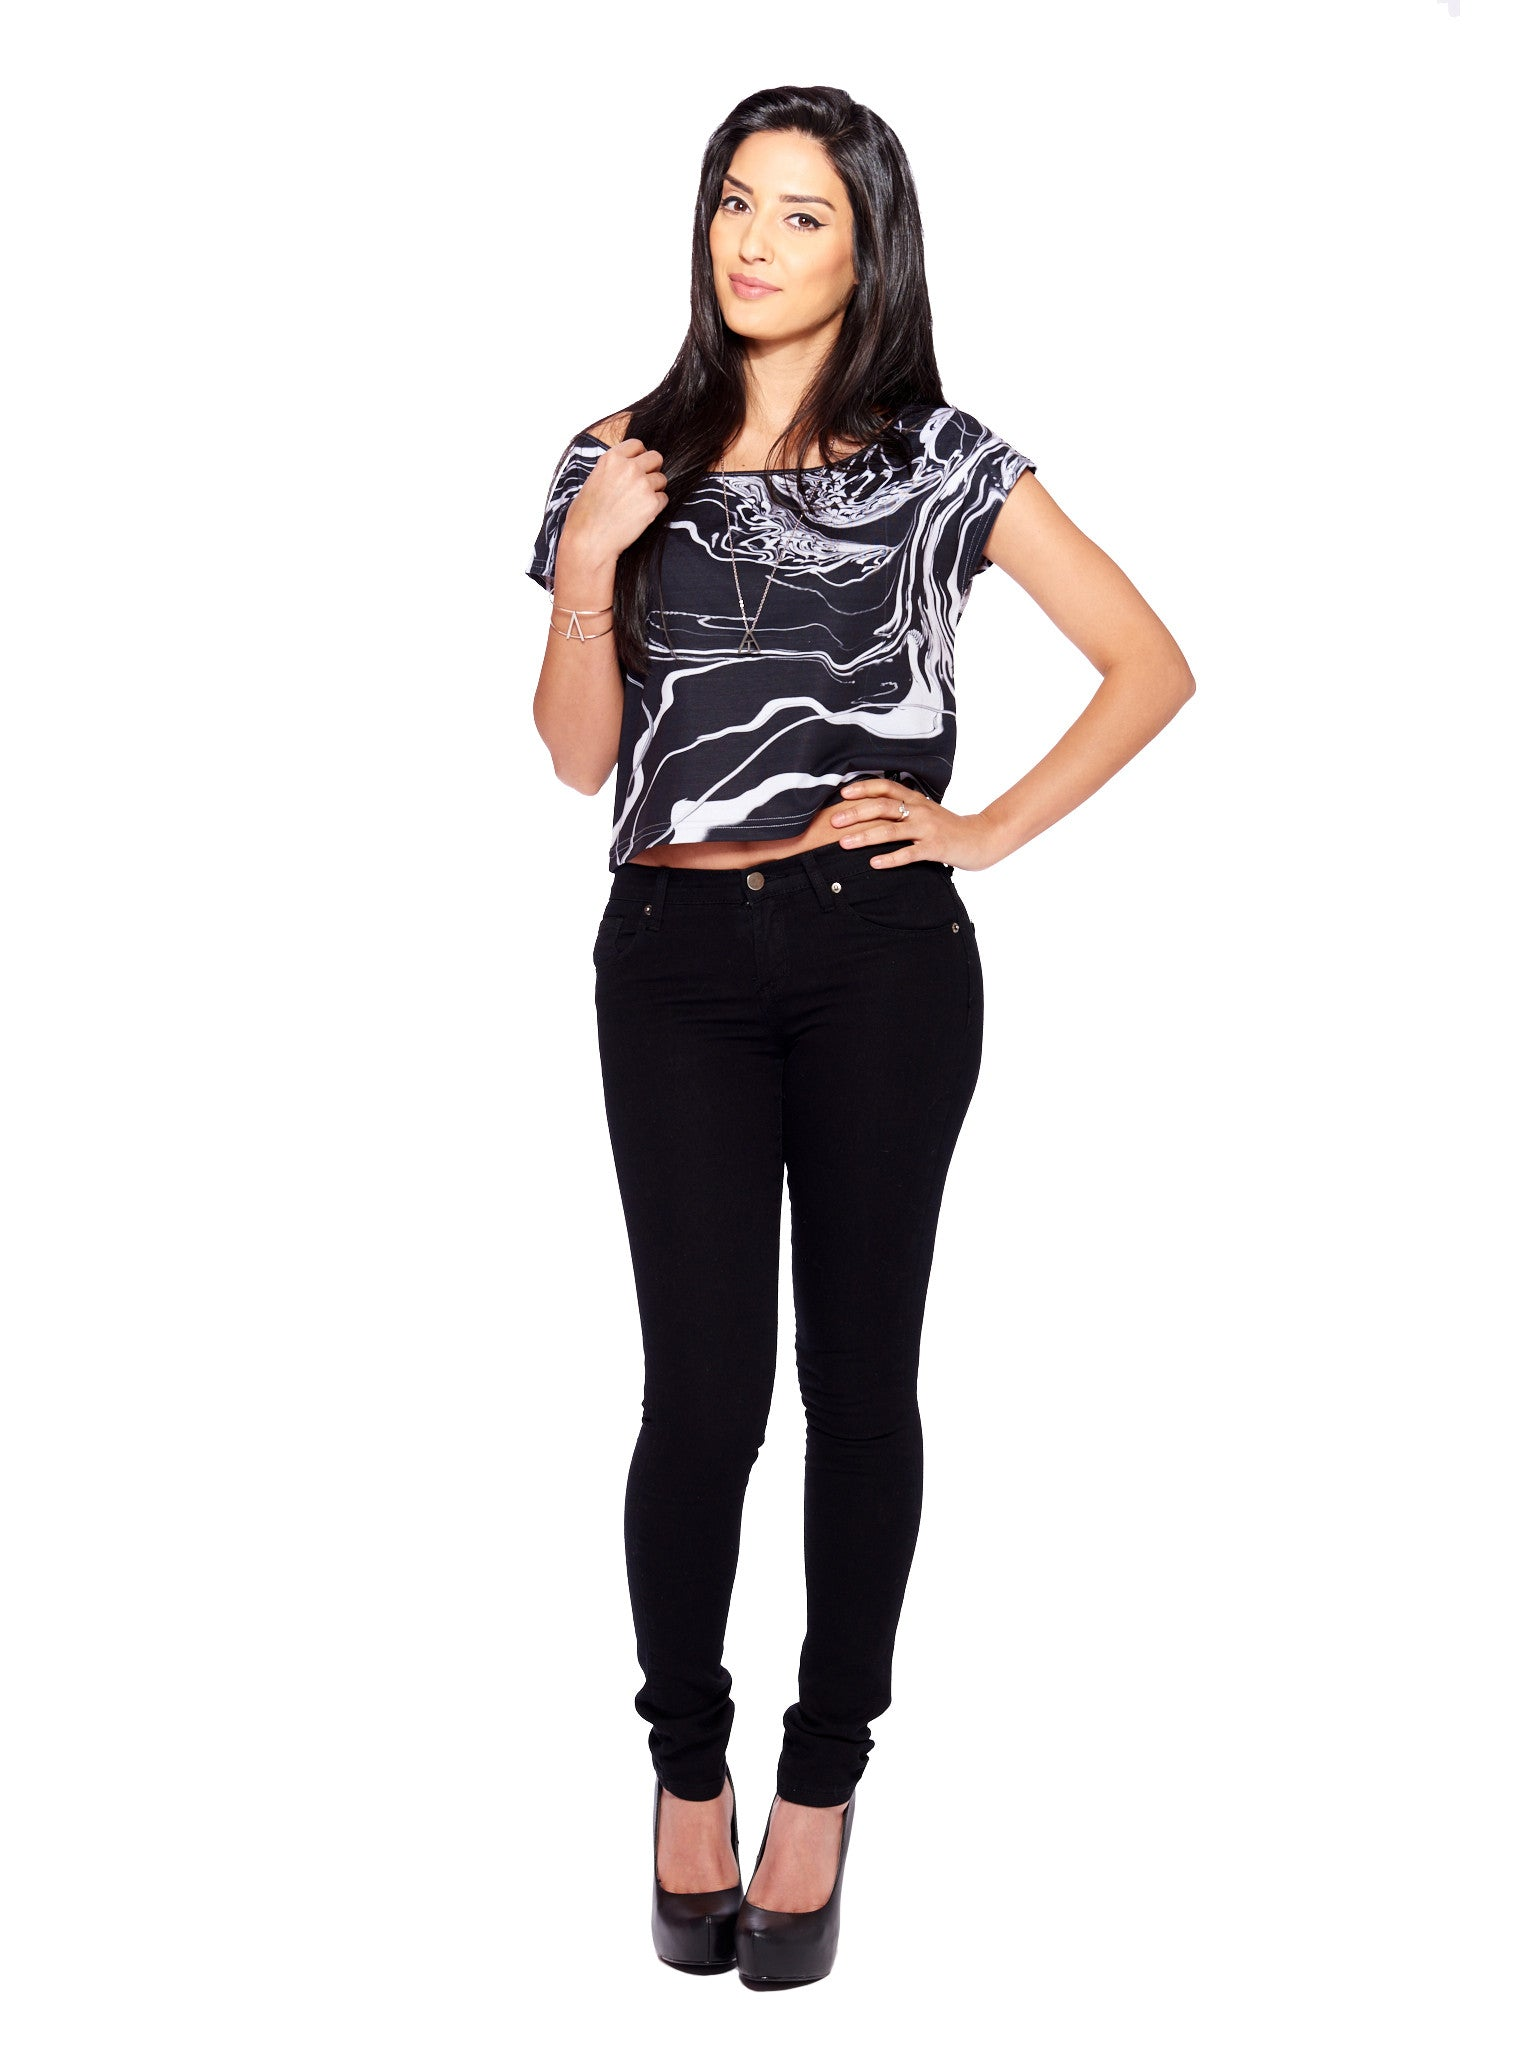 Eloquence Women's Crop Top - Nuvango Gallery & Goods - 2